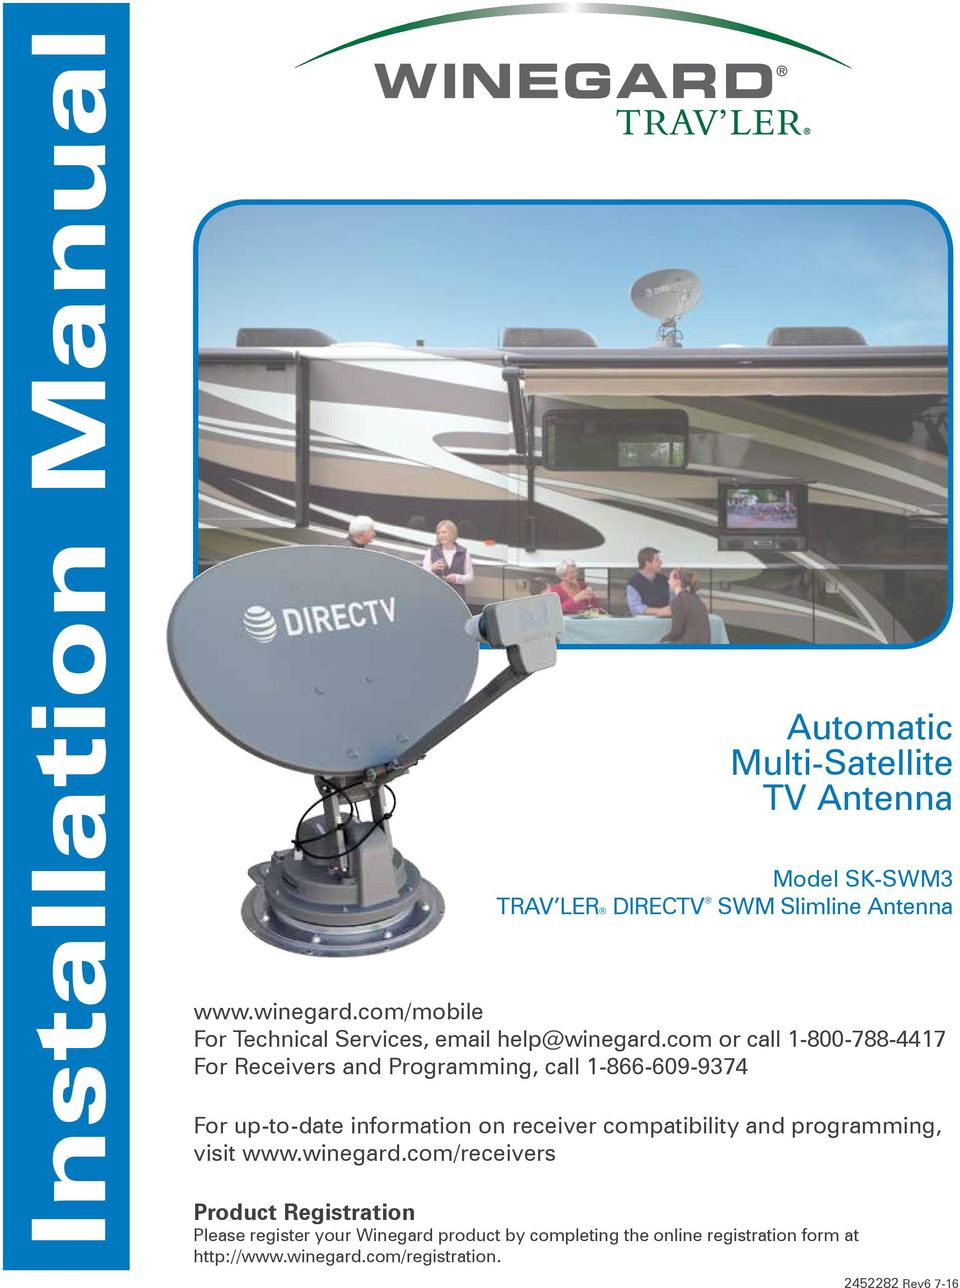 com or call 1-800-788-4417 For Receivers and Programming, call 1-866-609-9374 For up-to-date information on receiver